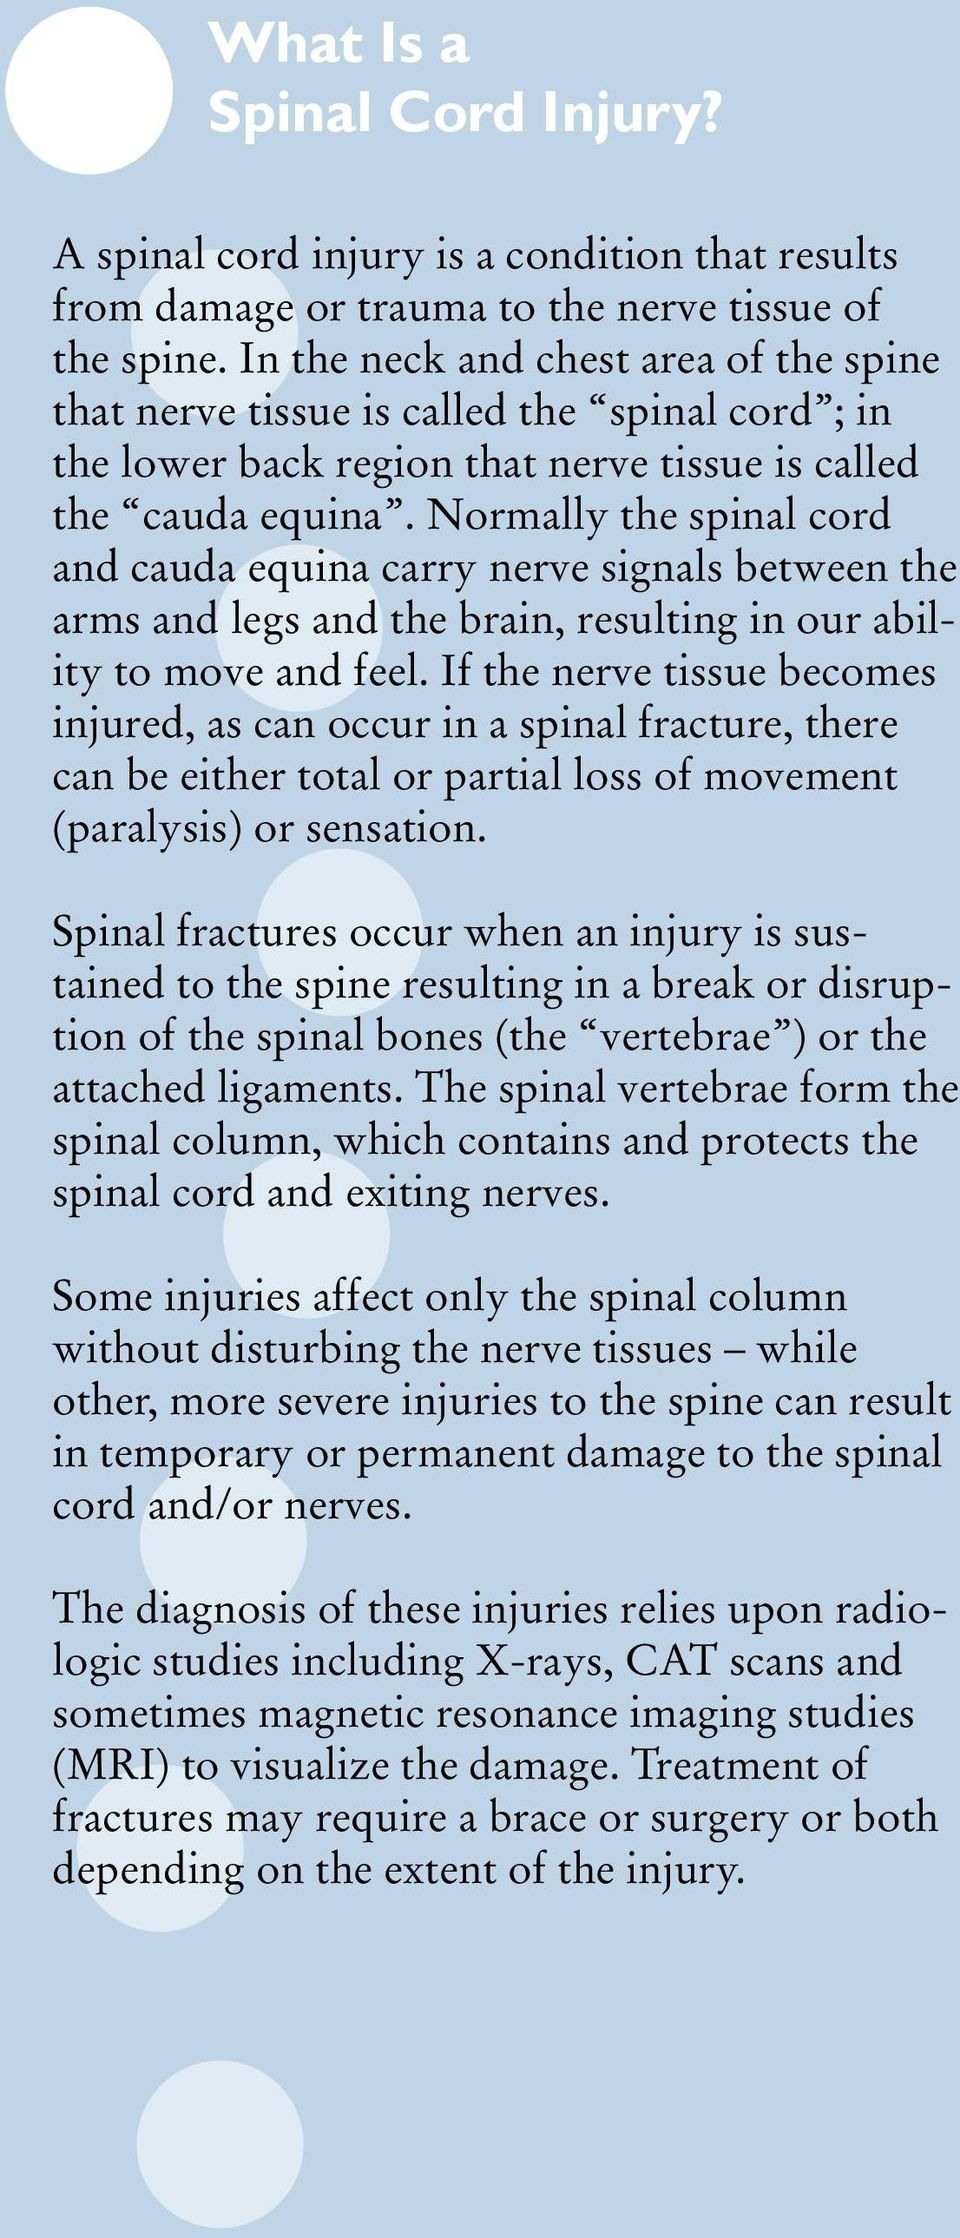 Normally the spinal cord and cauda equina carry nerve signals between the arms and legs and the brain, resulting in our ability to move and feel.